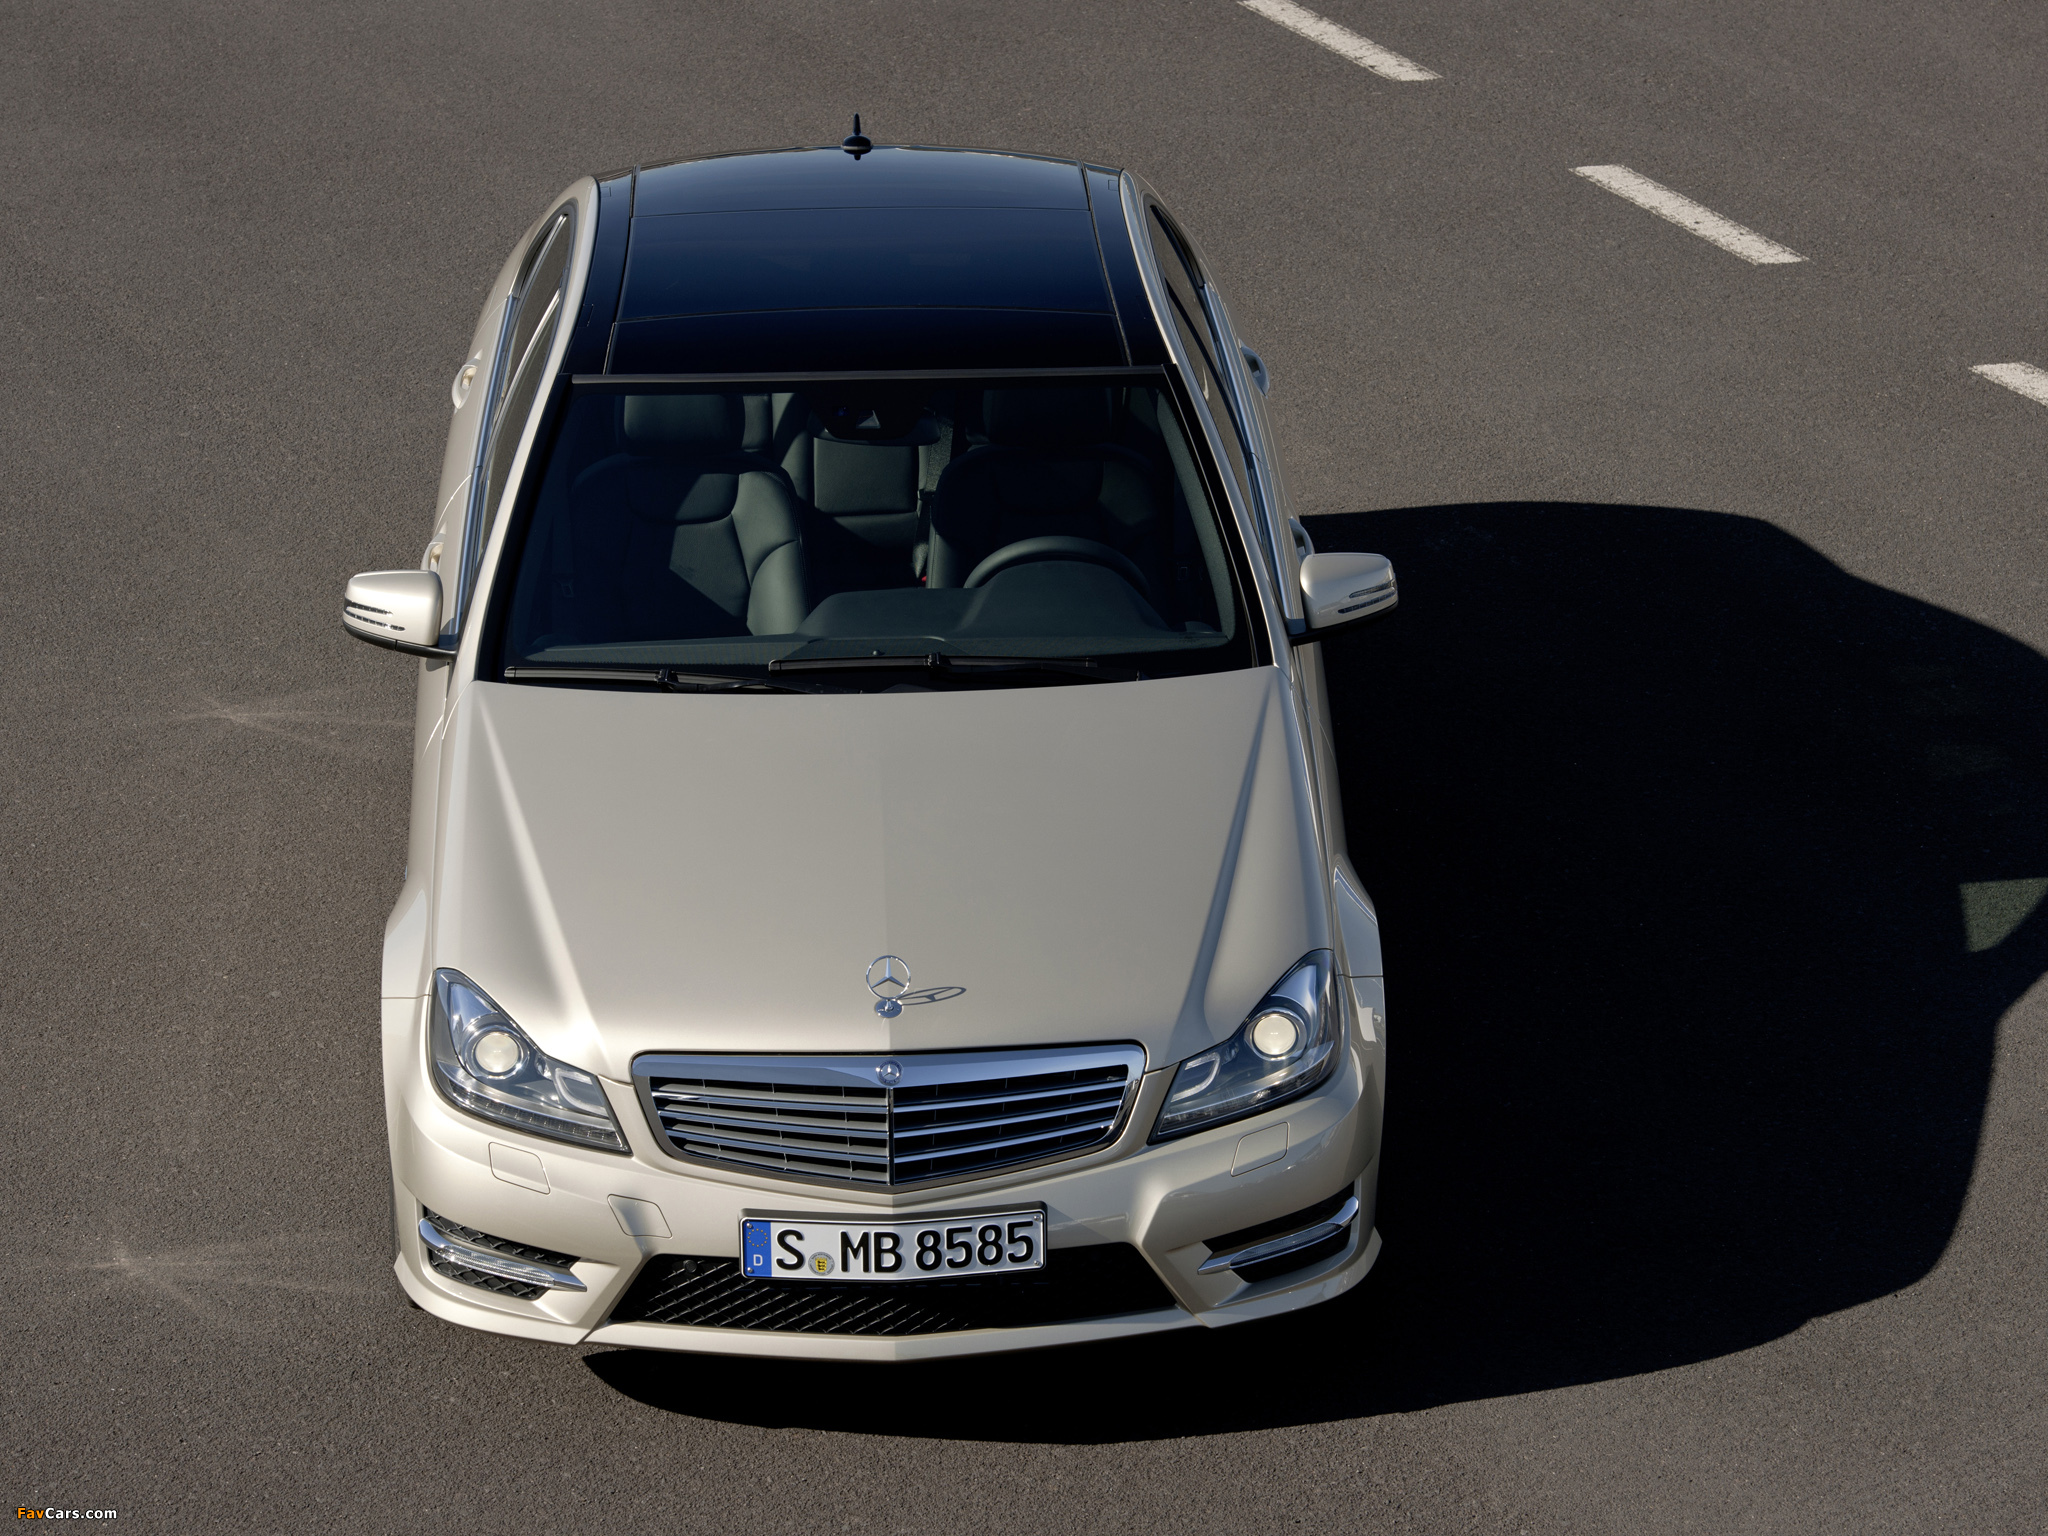 Mercedes-Benz C 350 AMG Sports Package (W204) 2011 images (2048 x 1536)